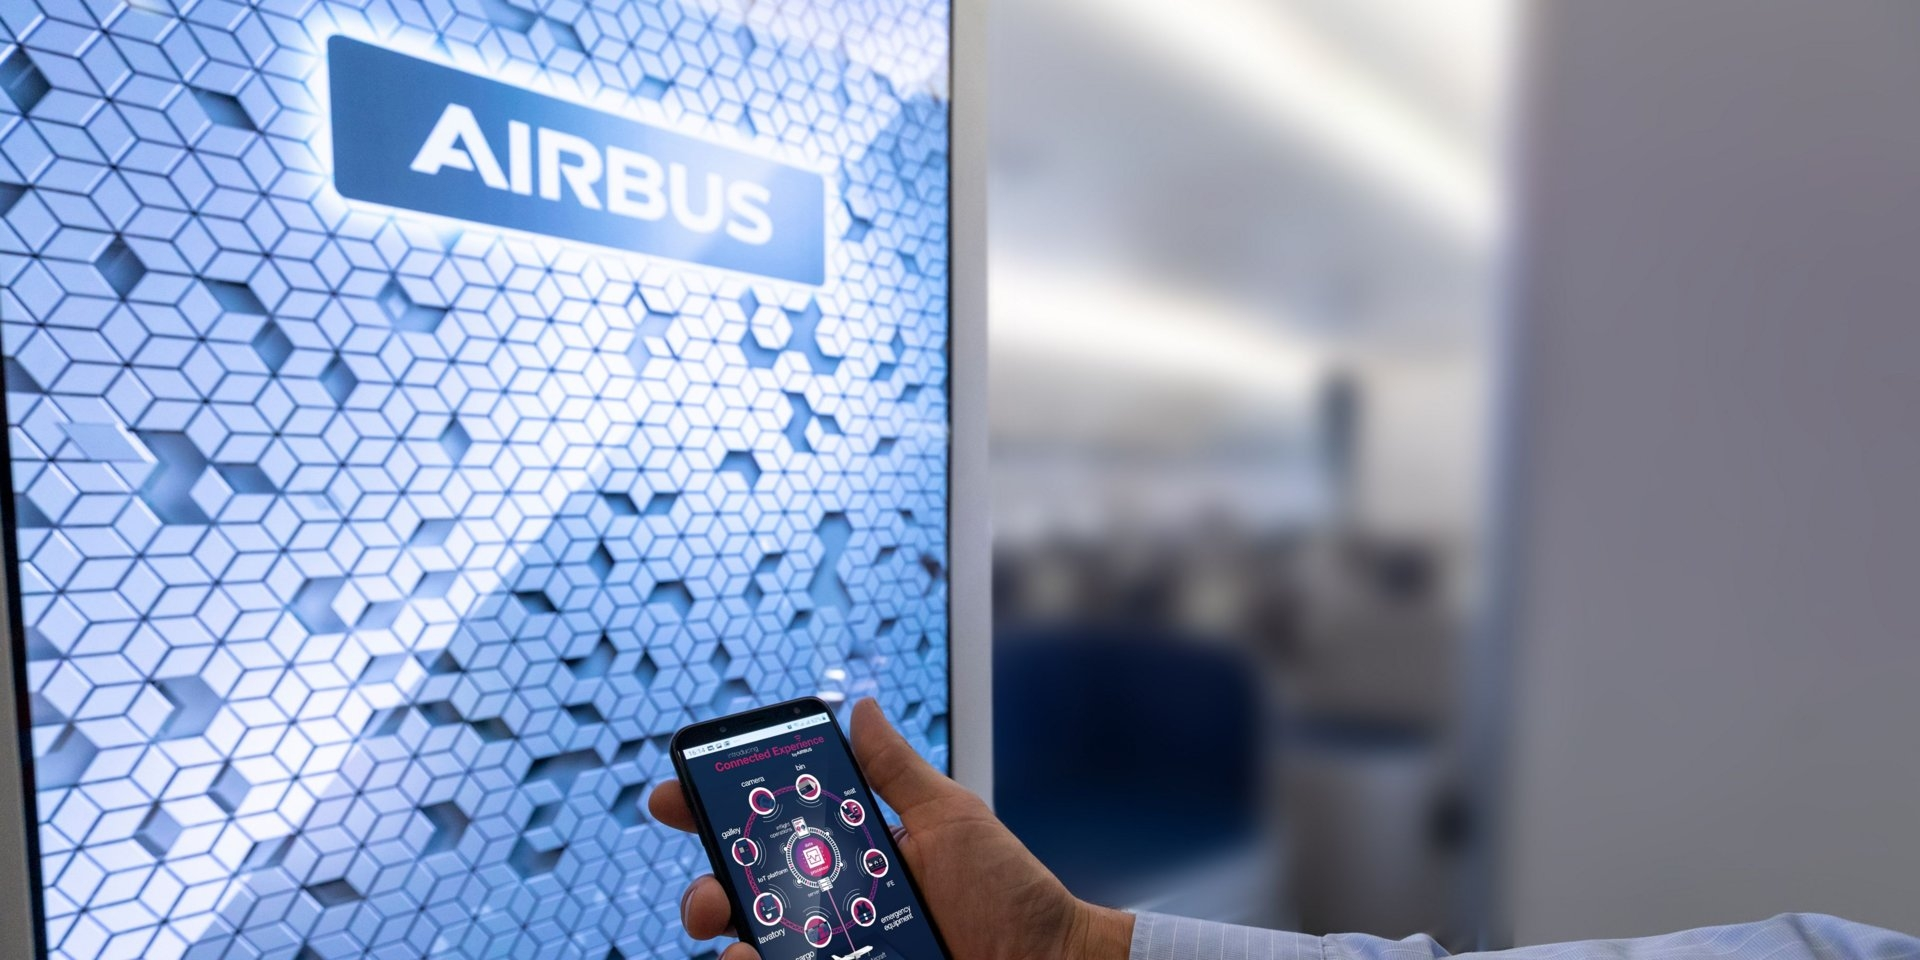 The next generation of aircraft will track your bathroom visits